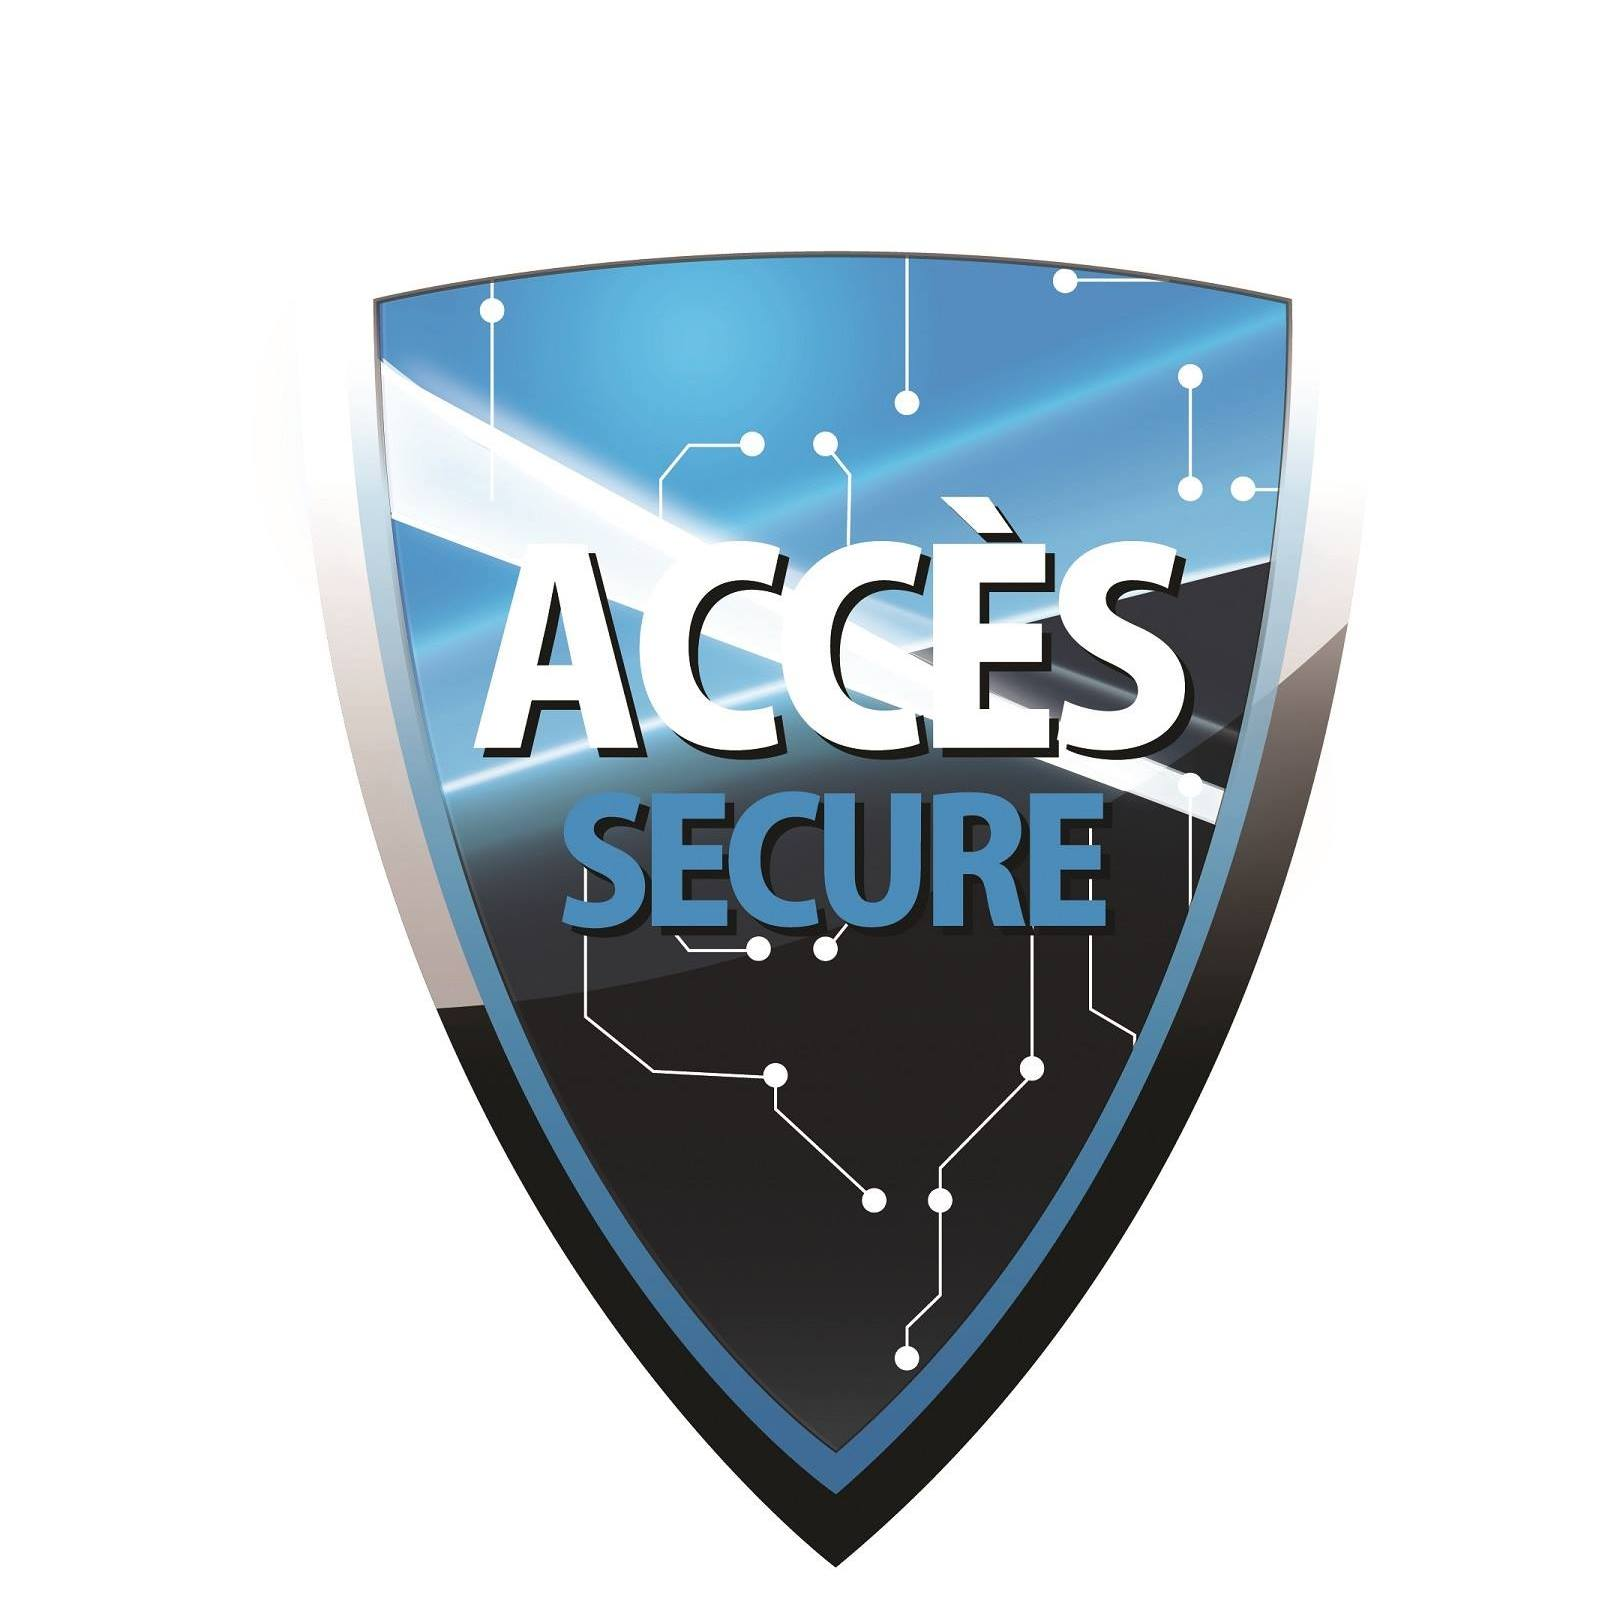 Acces Secure reviews, opinions and consumer feedback